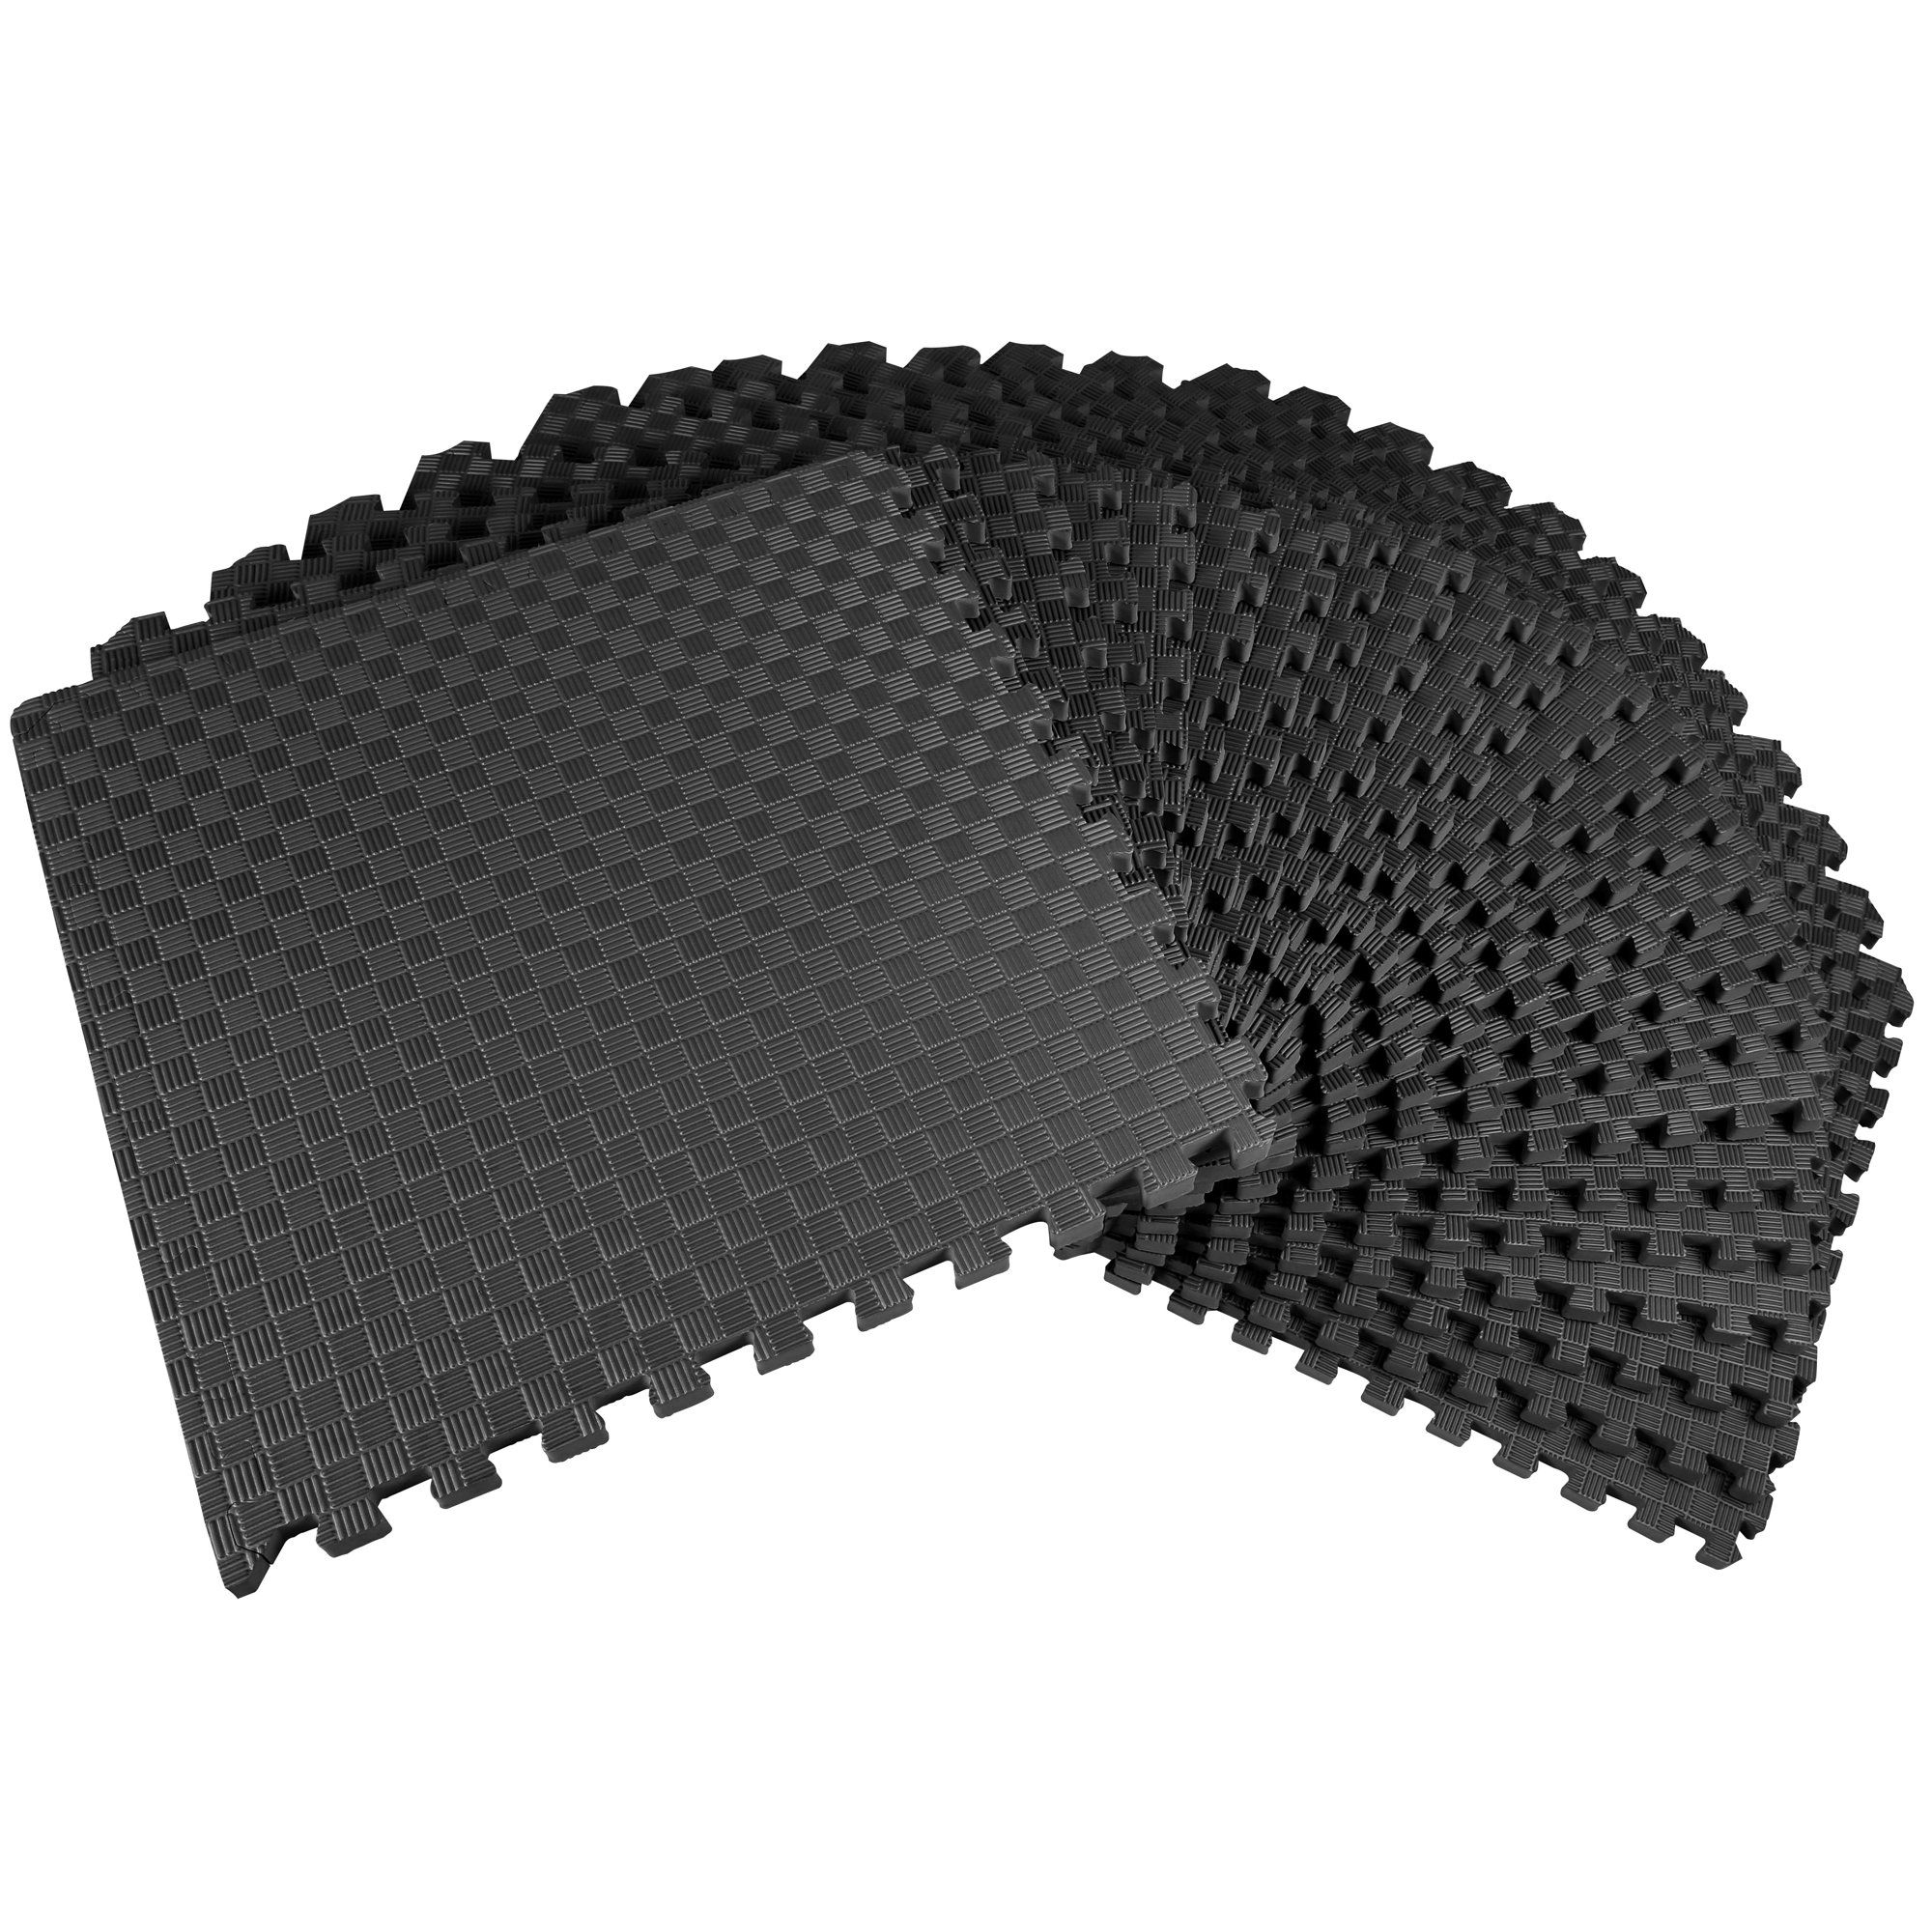 Balancefrom 1 Extra Thick Puzzle Exercise Mat With Eva Foam Interlocking Tiles For Mma Exercise Gymnastics And Home Gym Protective Flooring 72 Square Feet In 2020 Interlocking Tile Mat Exercises Gym Flooring Rubber